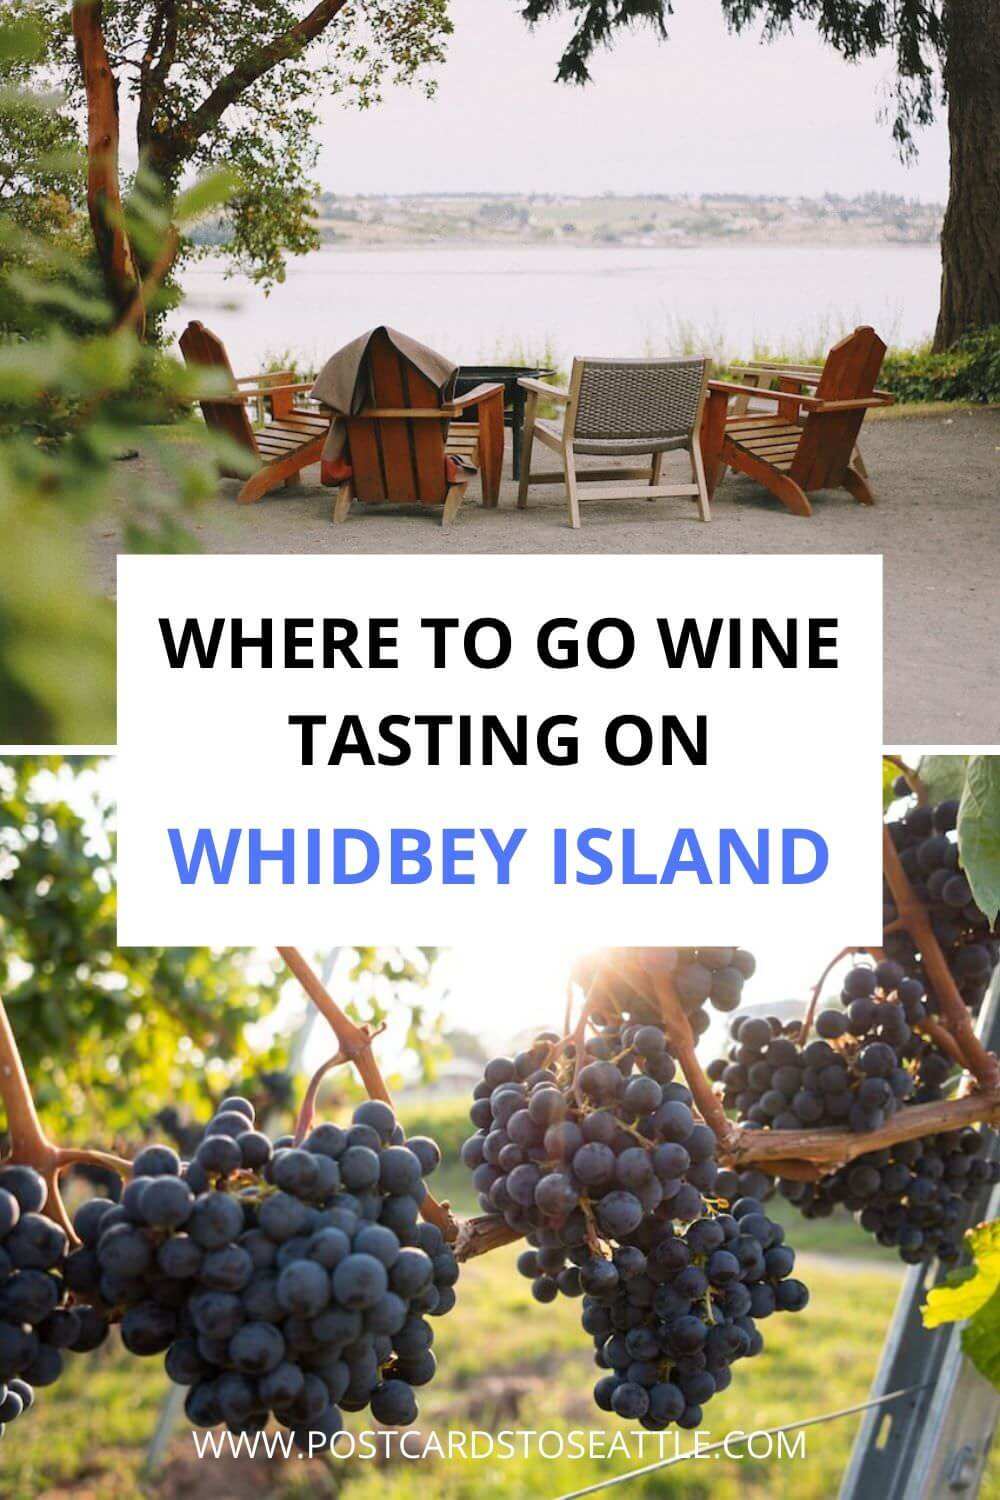 The Best Whidbey Island Wineries and Breweries to Visit